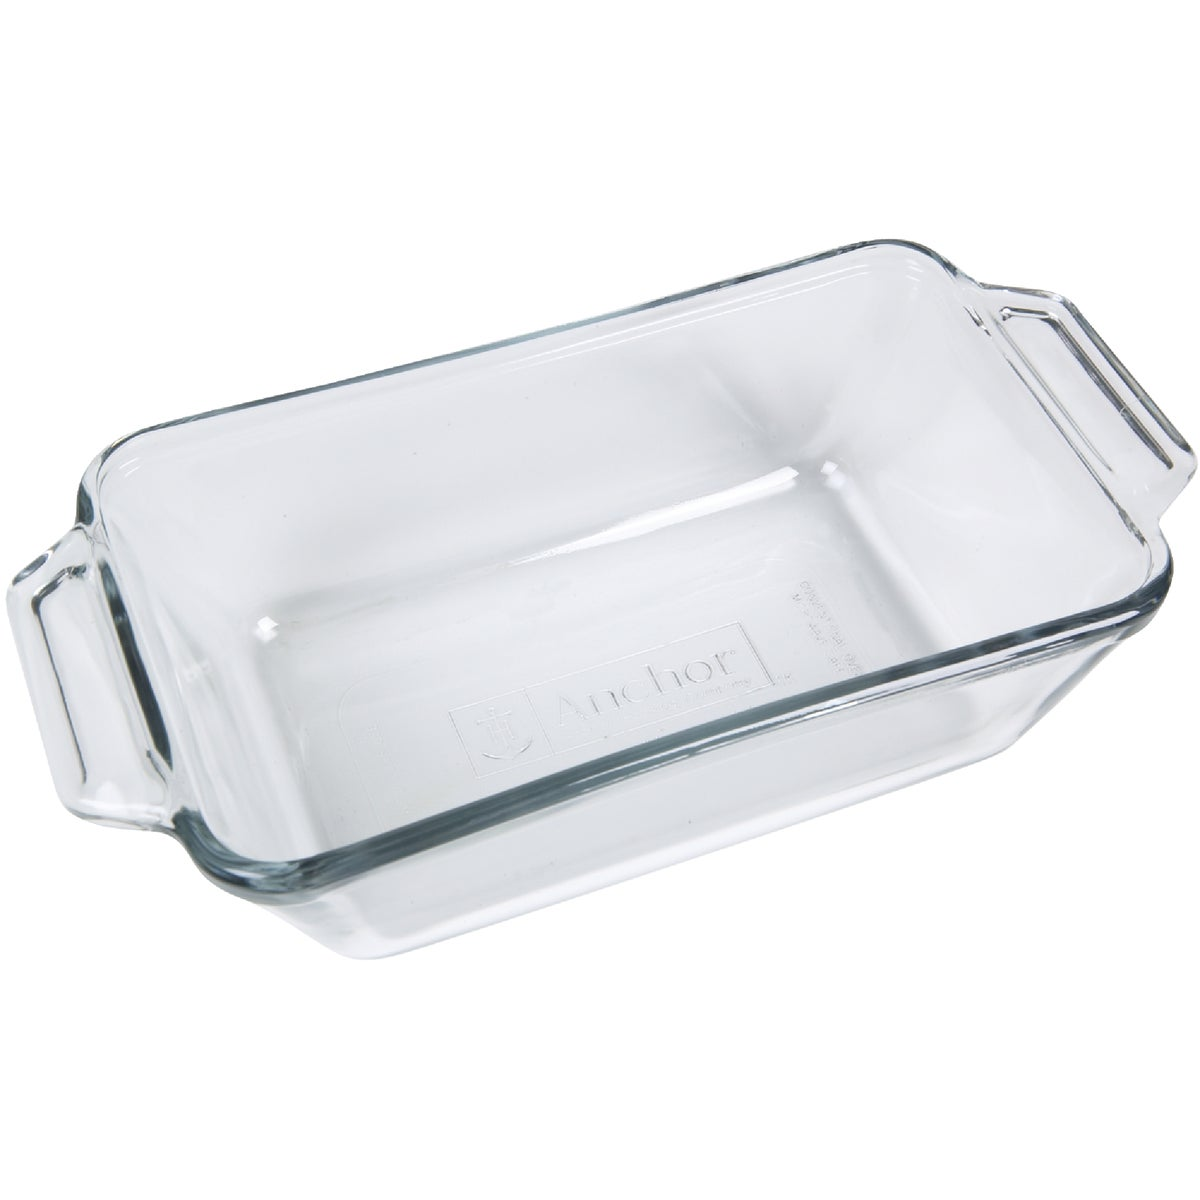 1.5QT GLASS LOAF PAN - 81933OBL11 by Anchor Hckg Roberts